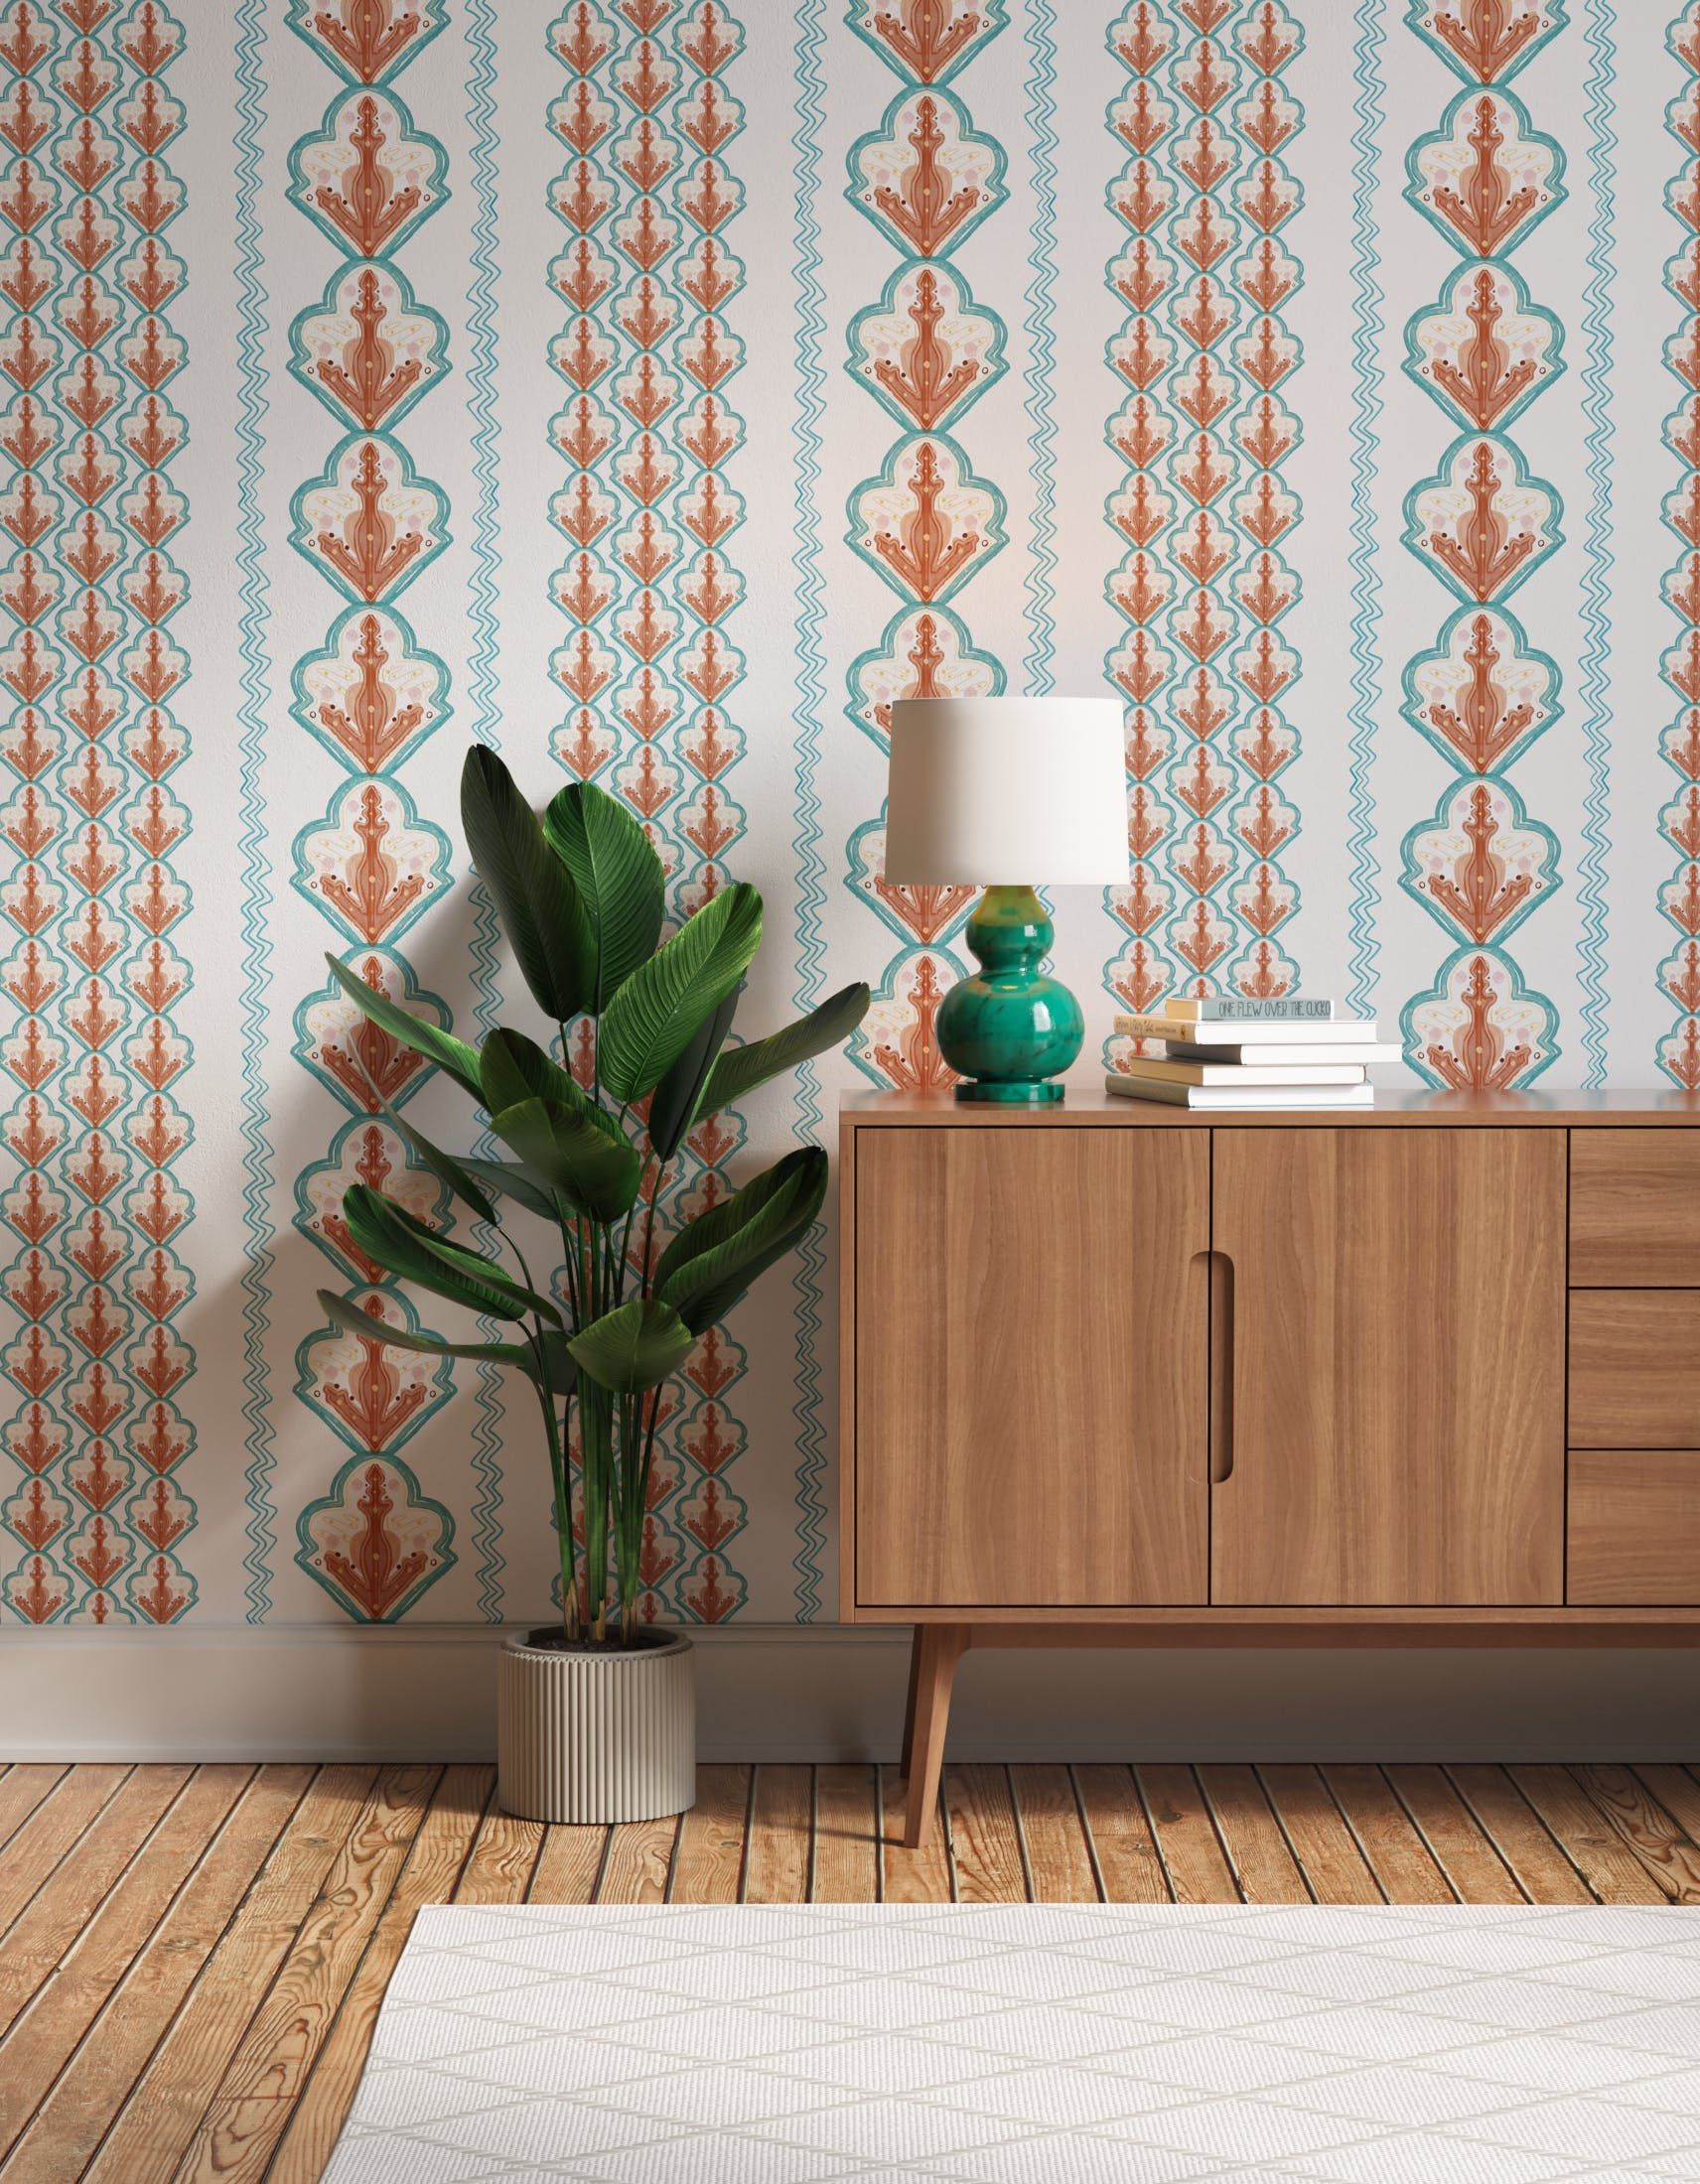 Hallway decorated with Lick x Lottie McDowell Travelling Tiles 02 orange patterned mosaic wallpaper